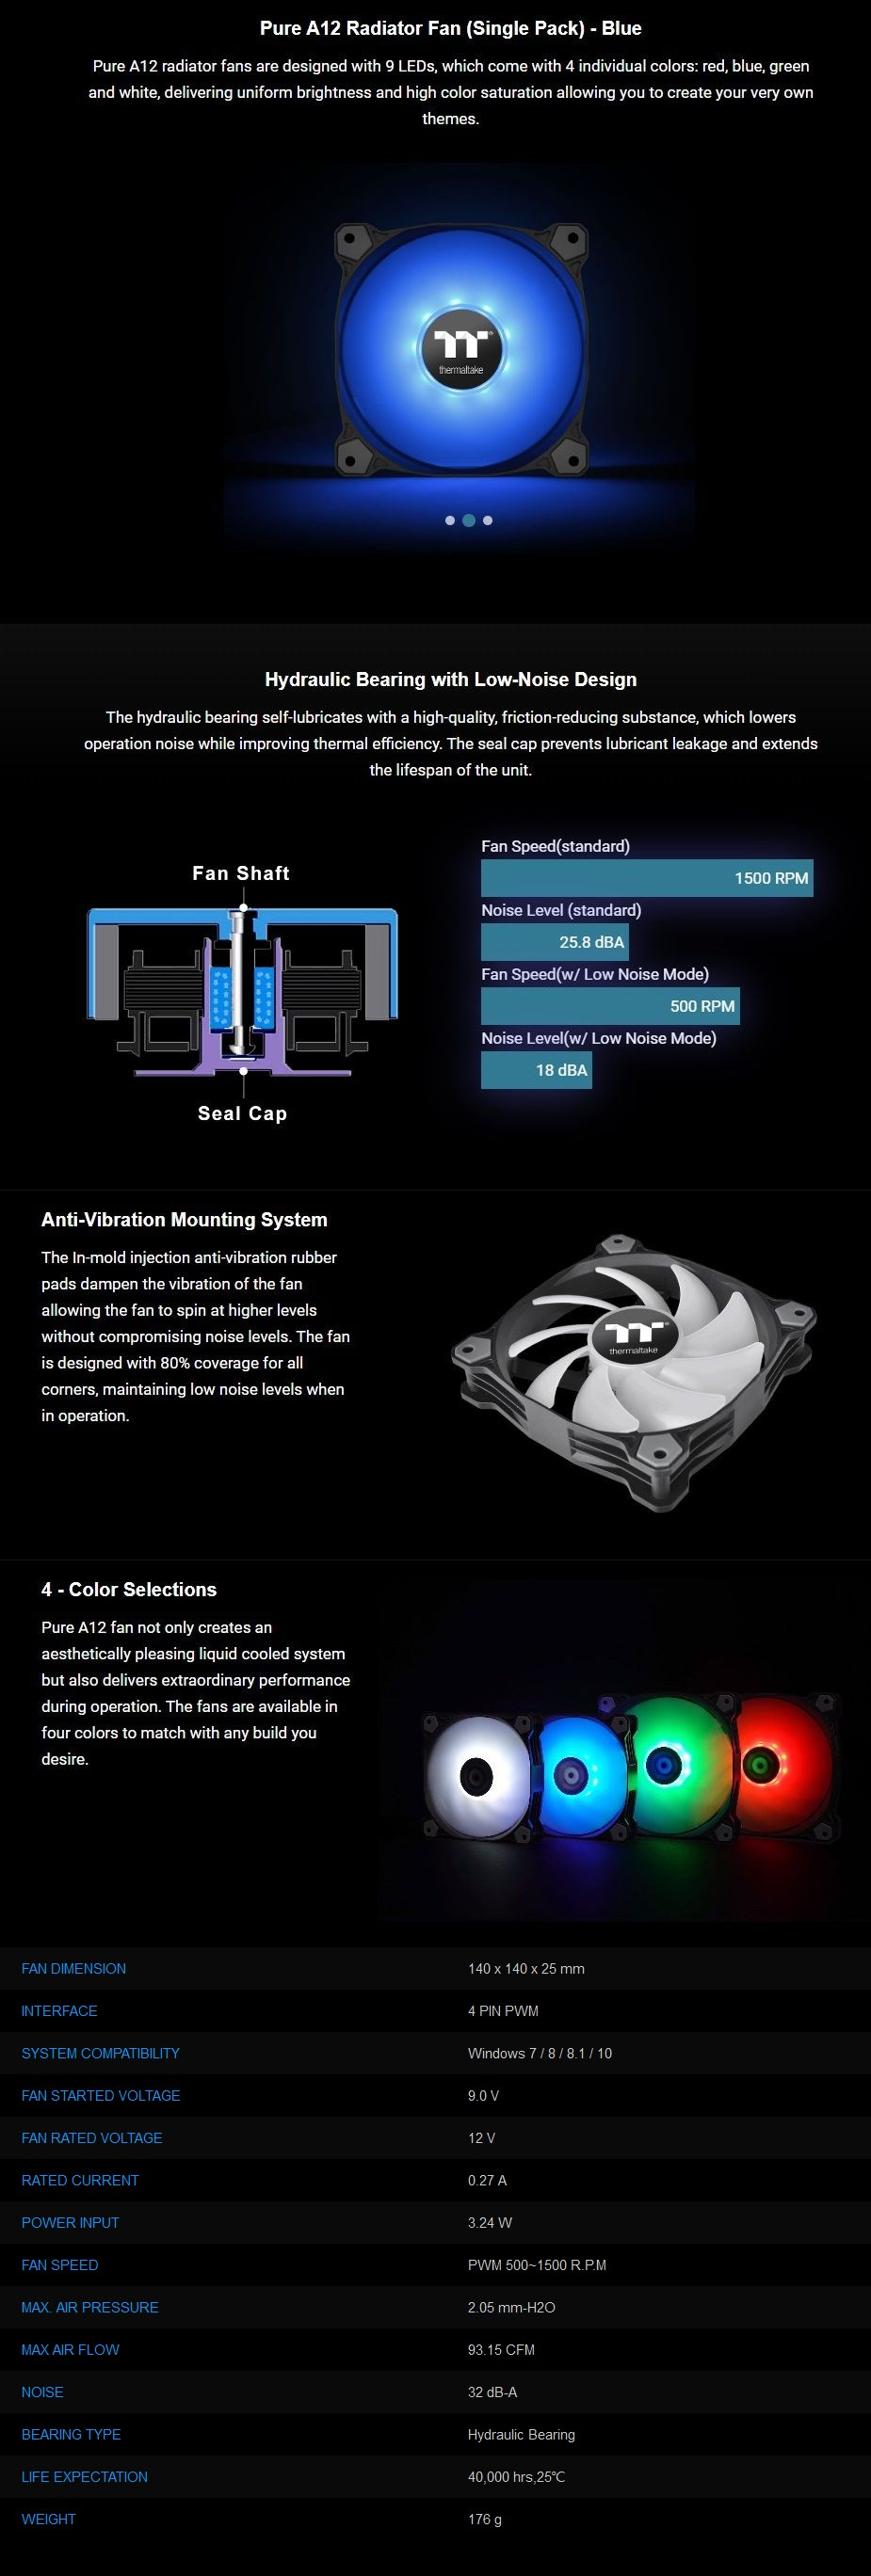 Thermaltake Pure A12 120mm LED Radiator Fan - Blue - Overview 1